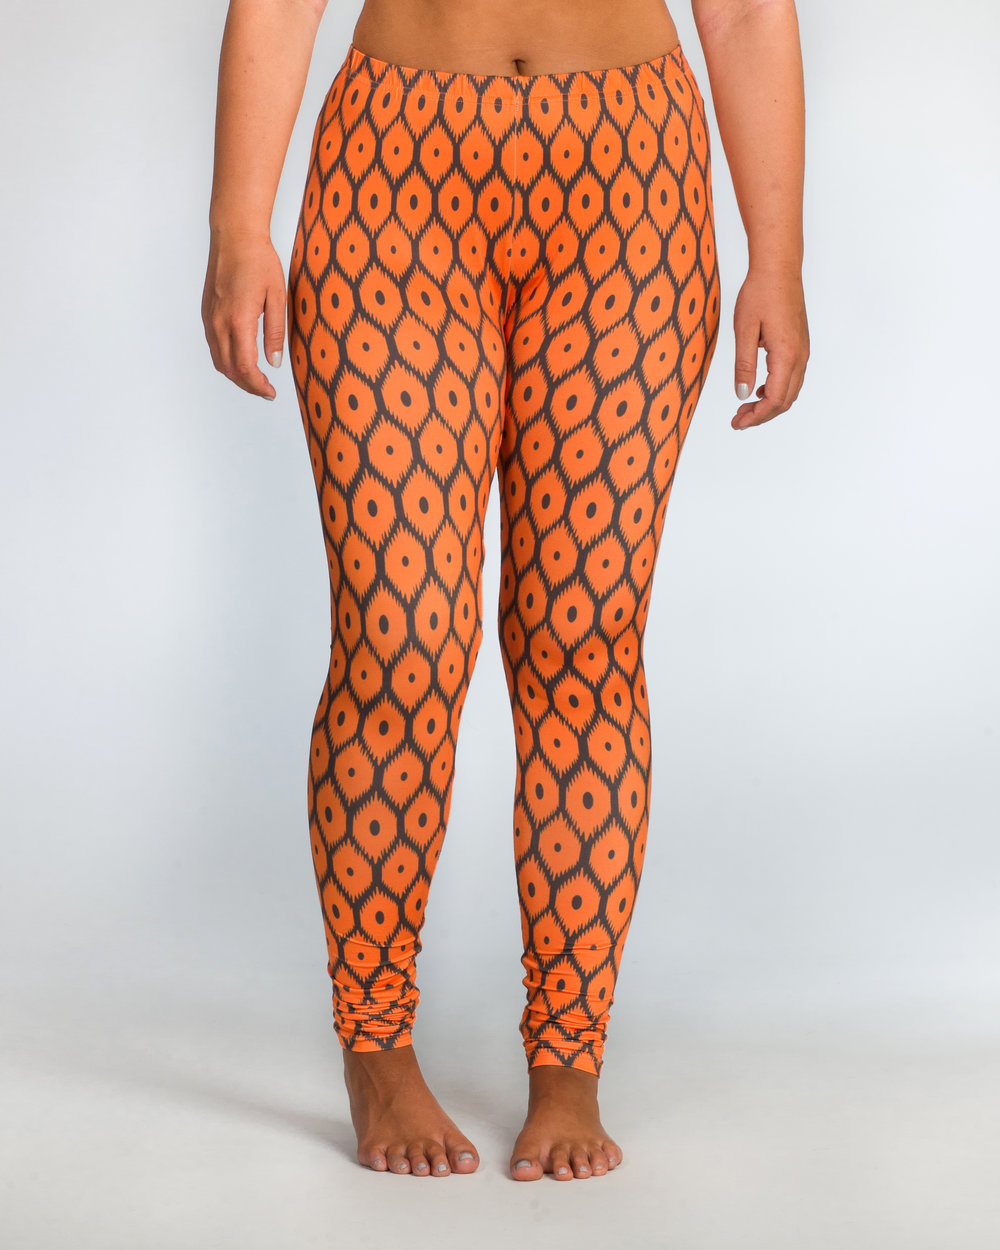 "Scoutis 5' 8"" tall, has 33"" hips, and chose a size XL in Gameday Leggings Tennessee Flamestitch."